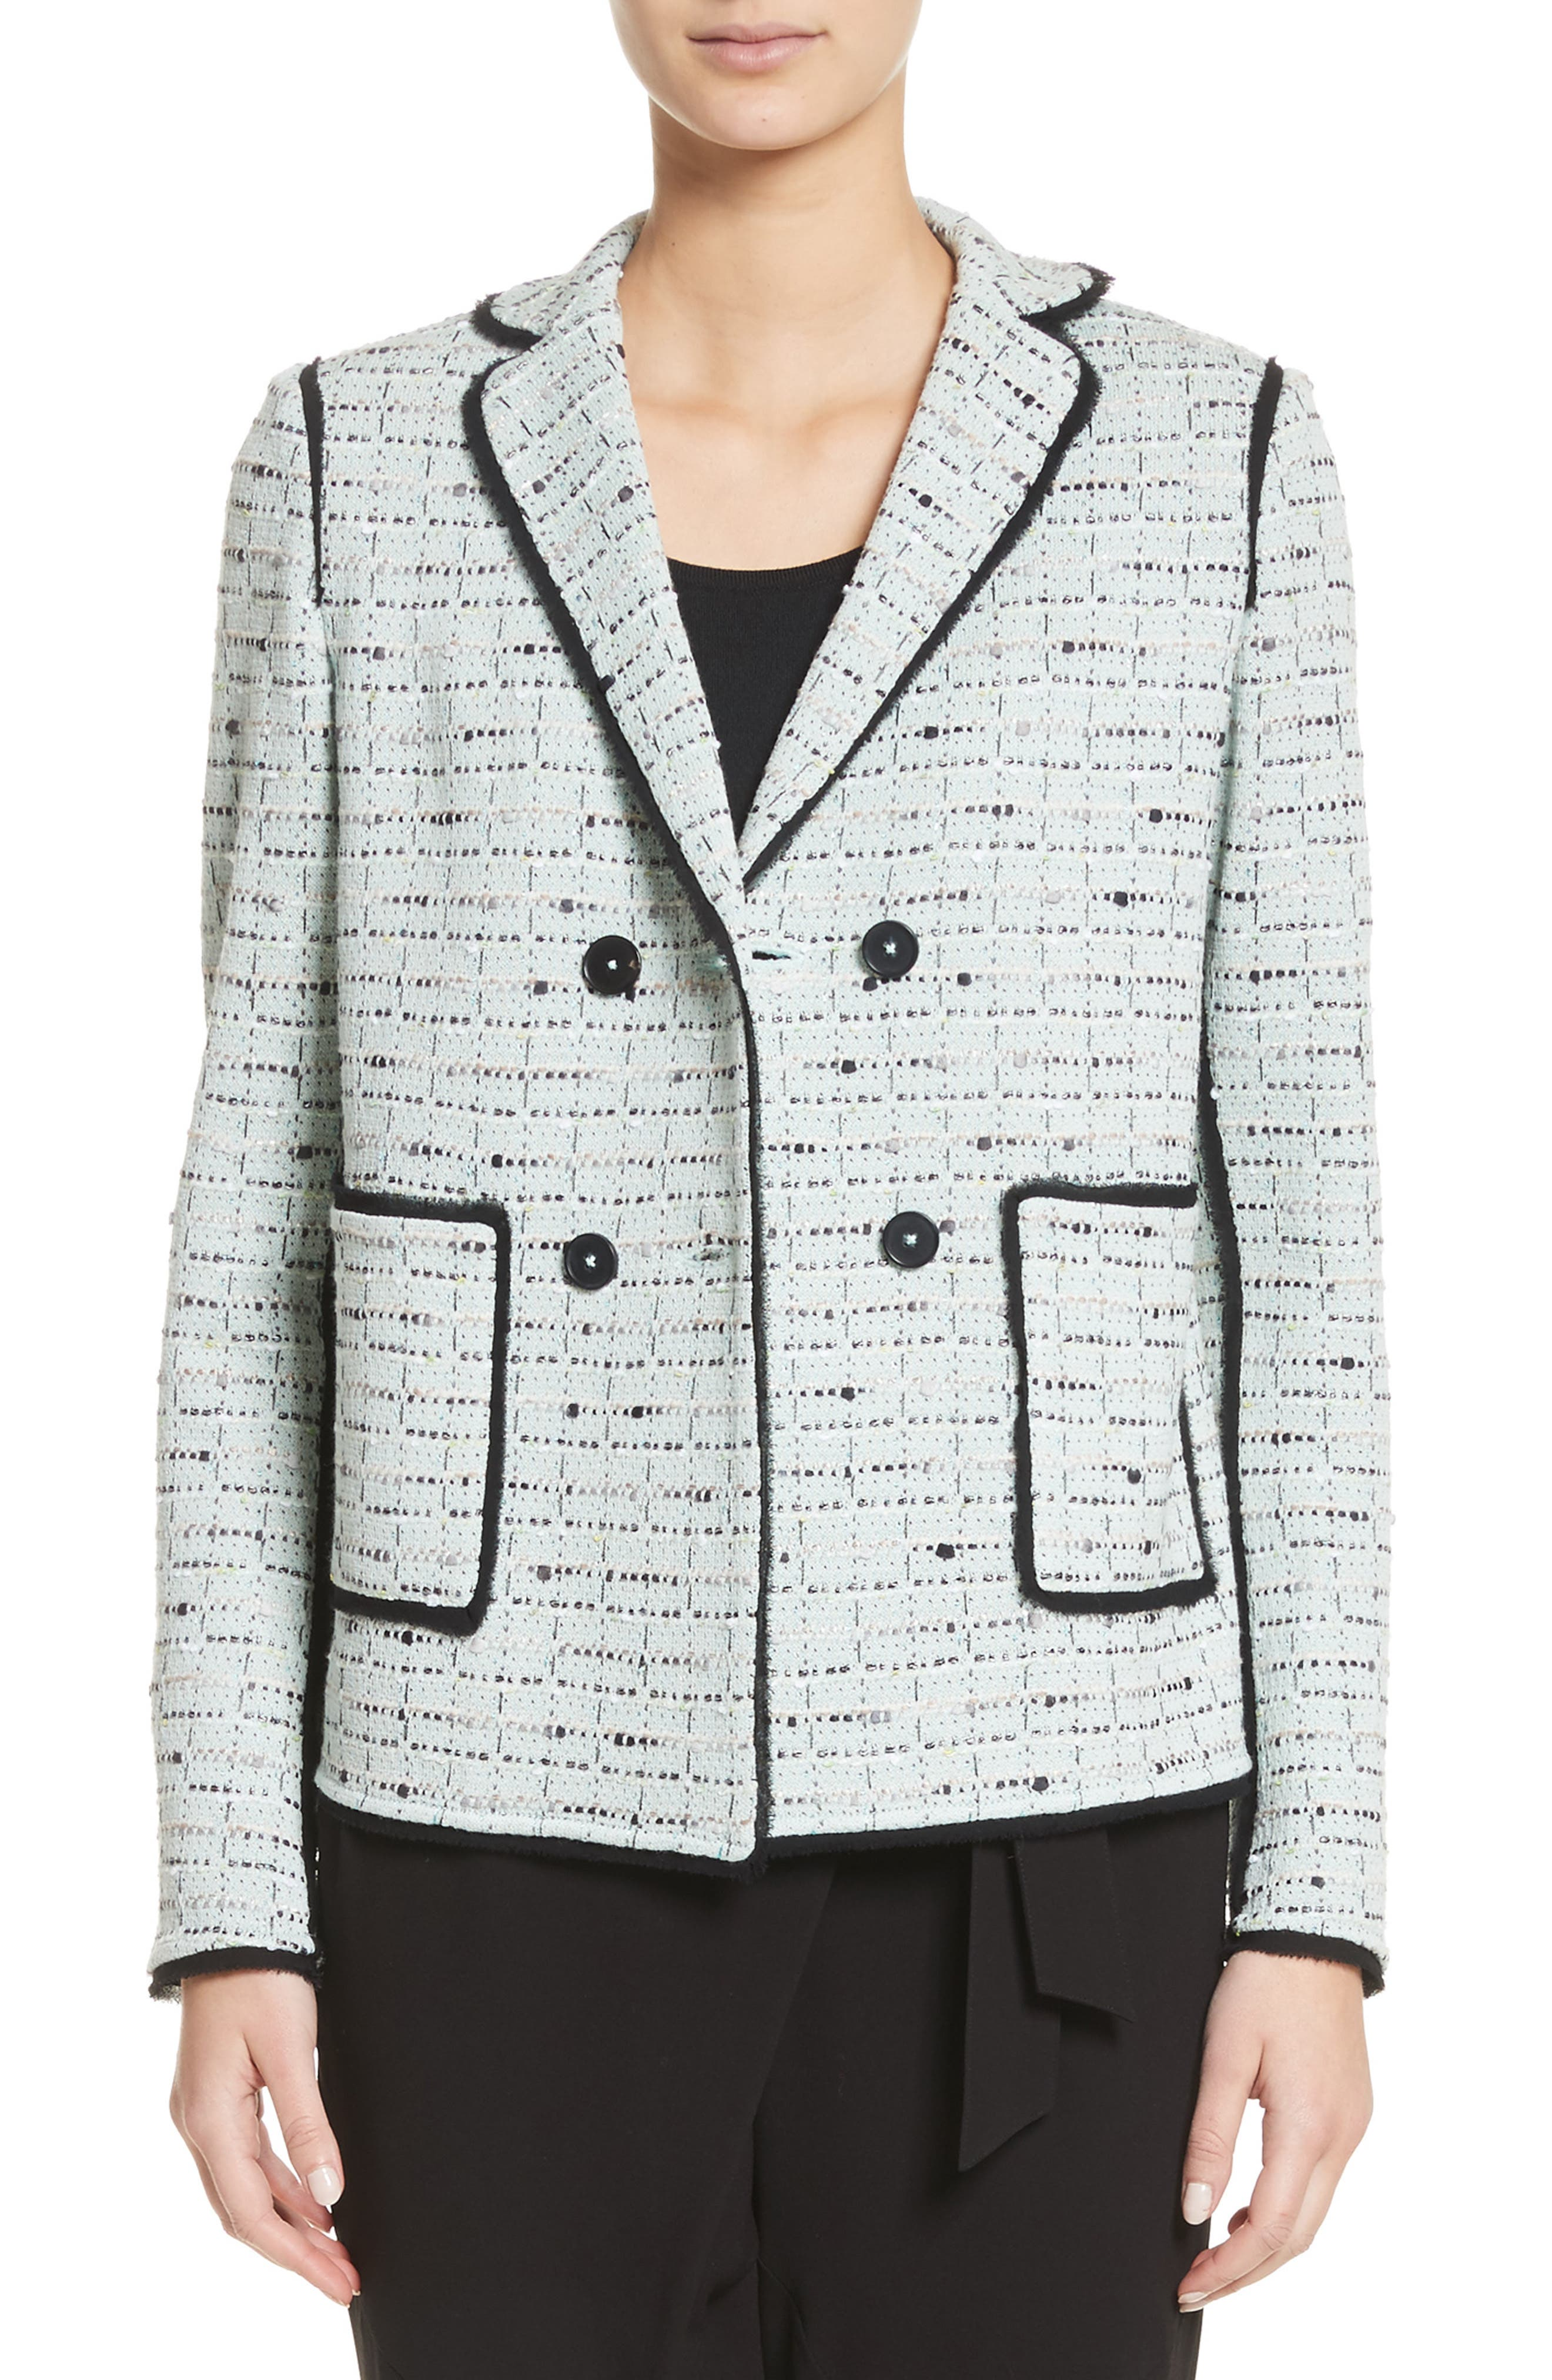 Adriana Tweed Double Breasted Blazer,                             Main thumbnail 1, color,                             450